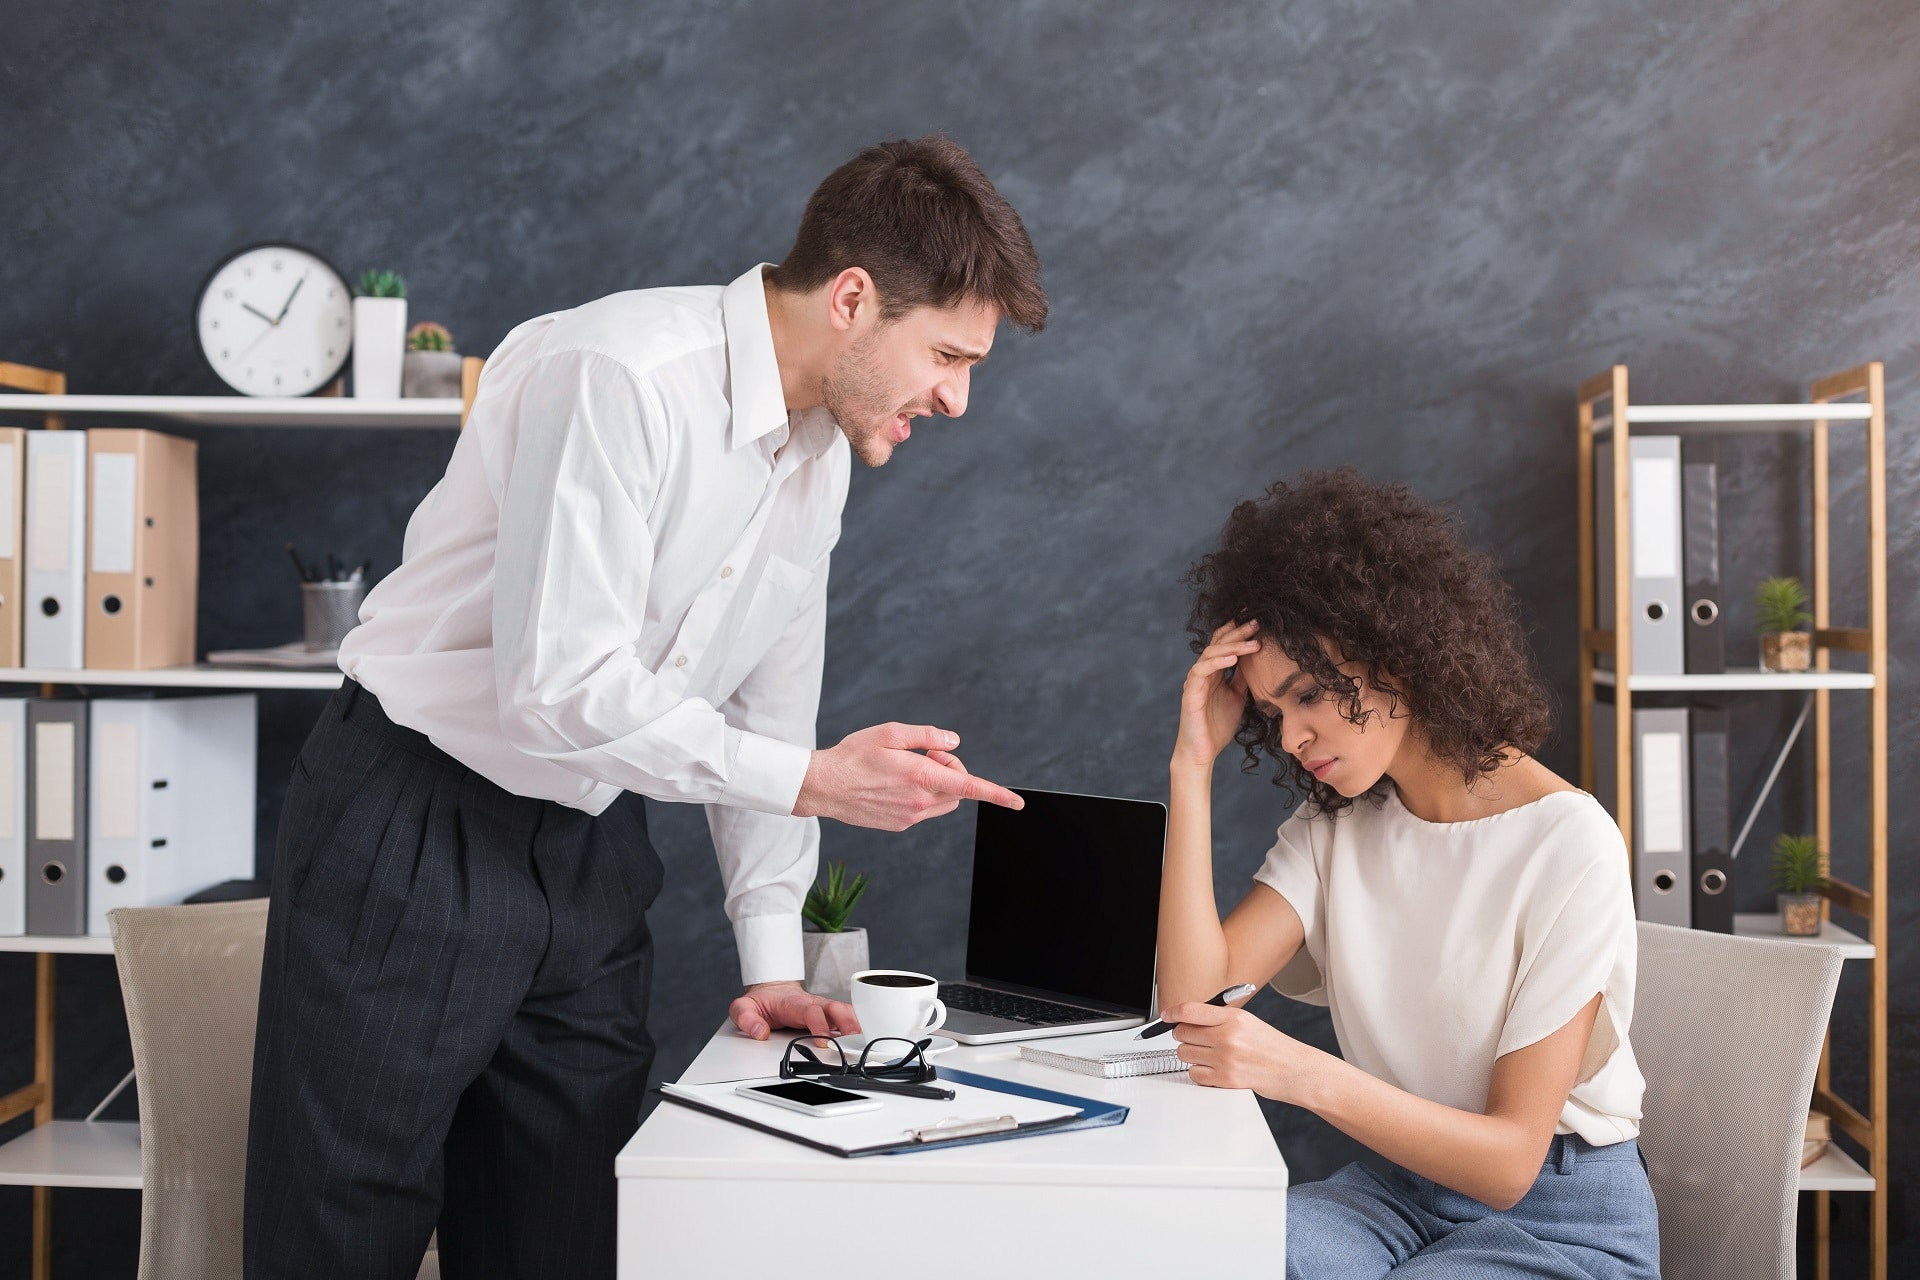 How Much Can You Sue For Discrimination At Work